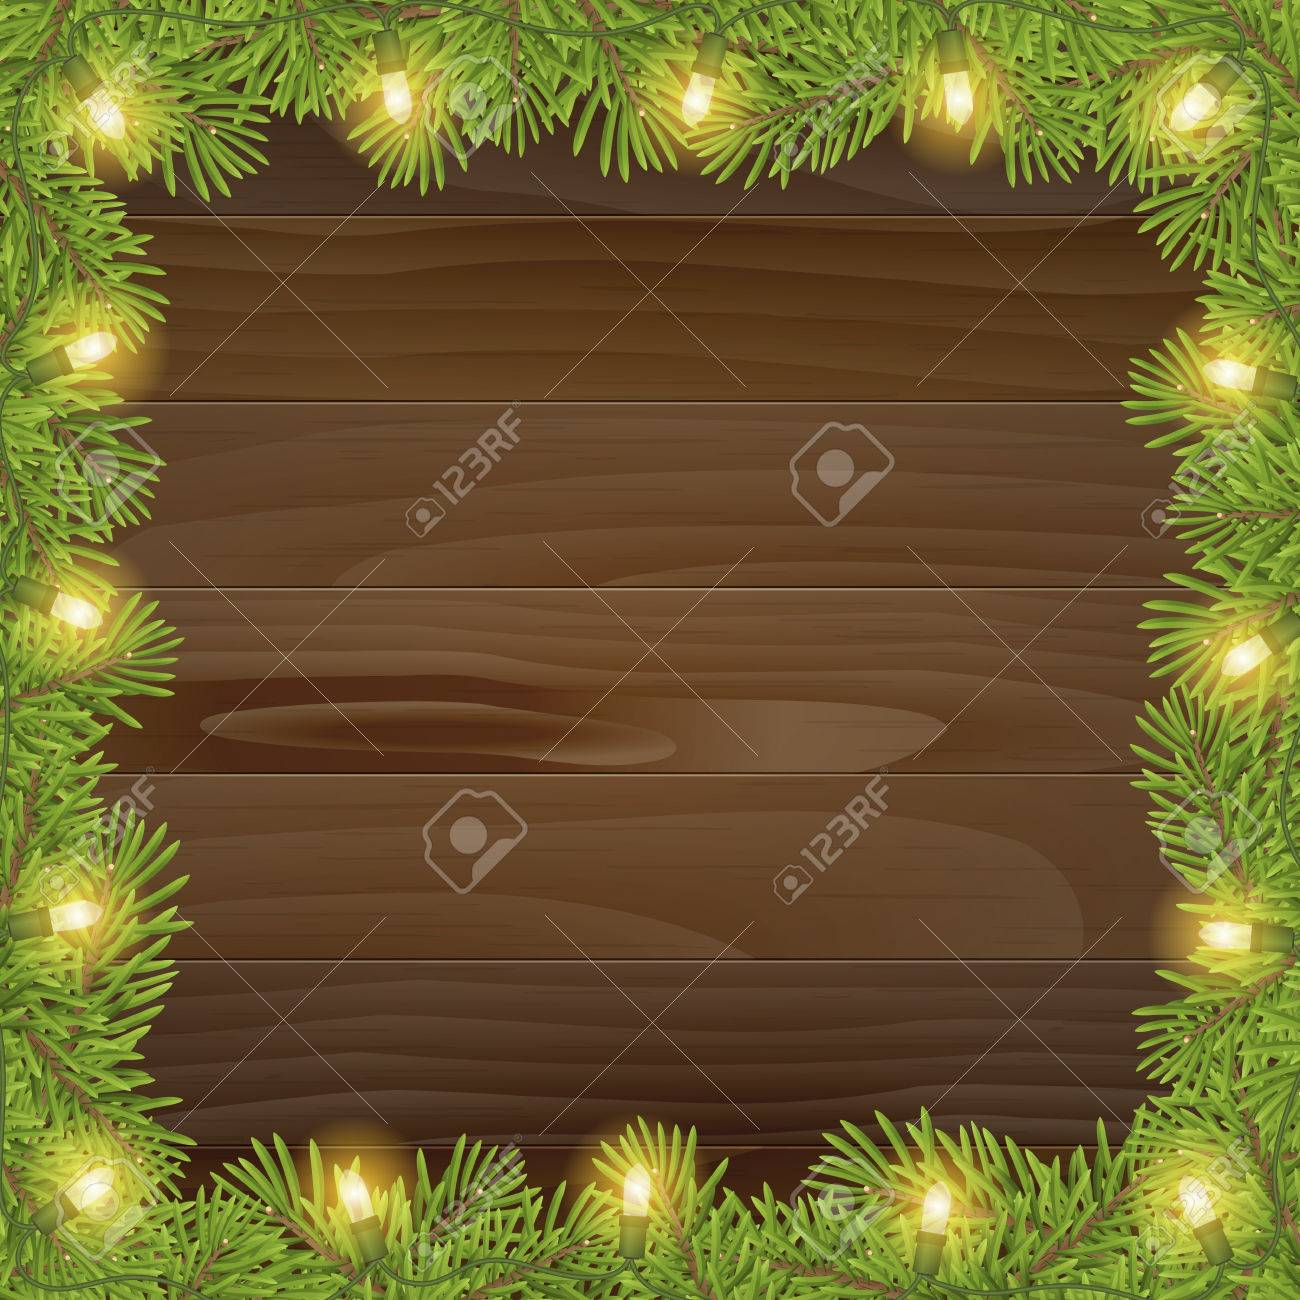 Christmas Tree Frame With Light Bulb Isolated On Wood Plank Background Vector Illustration For